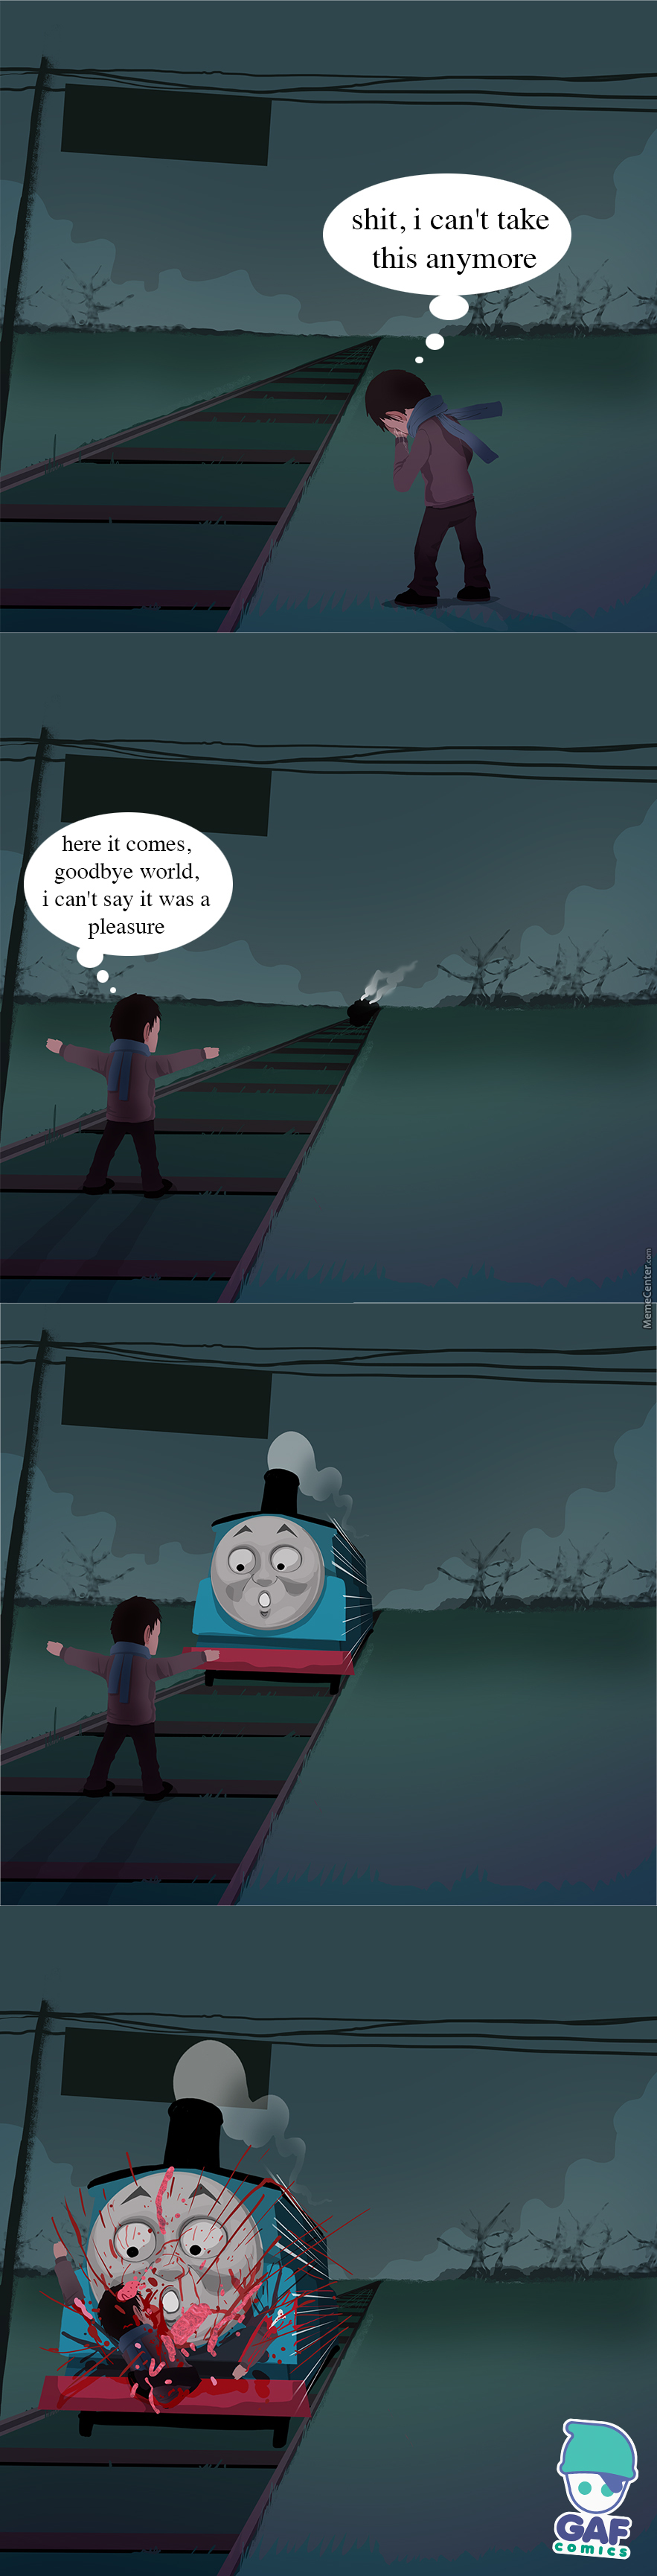 Thomas The Tank Engine Theme Song In The Background] by